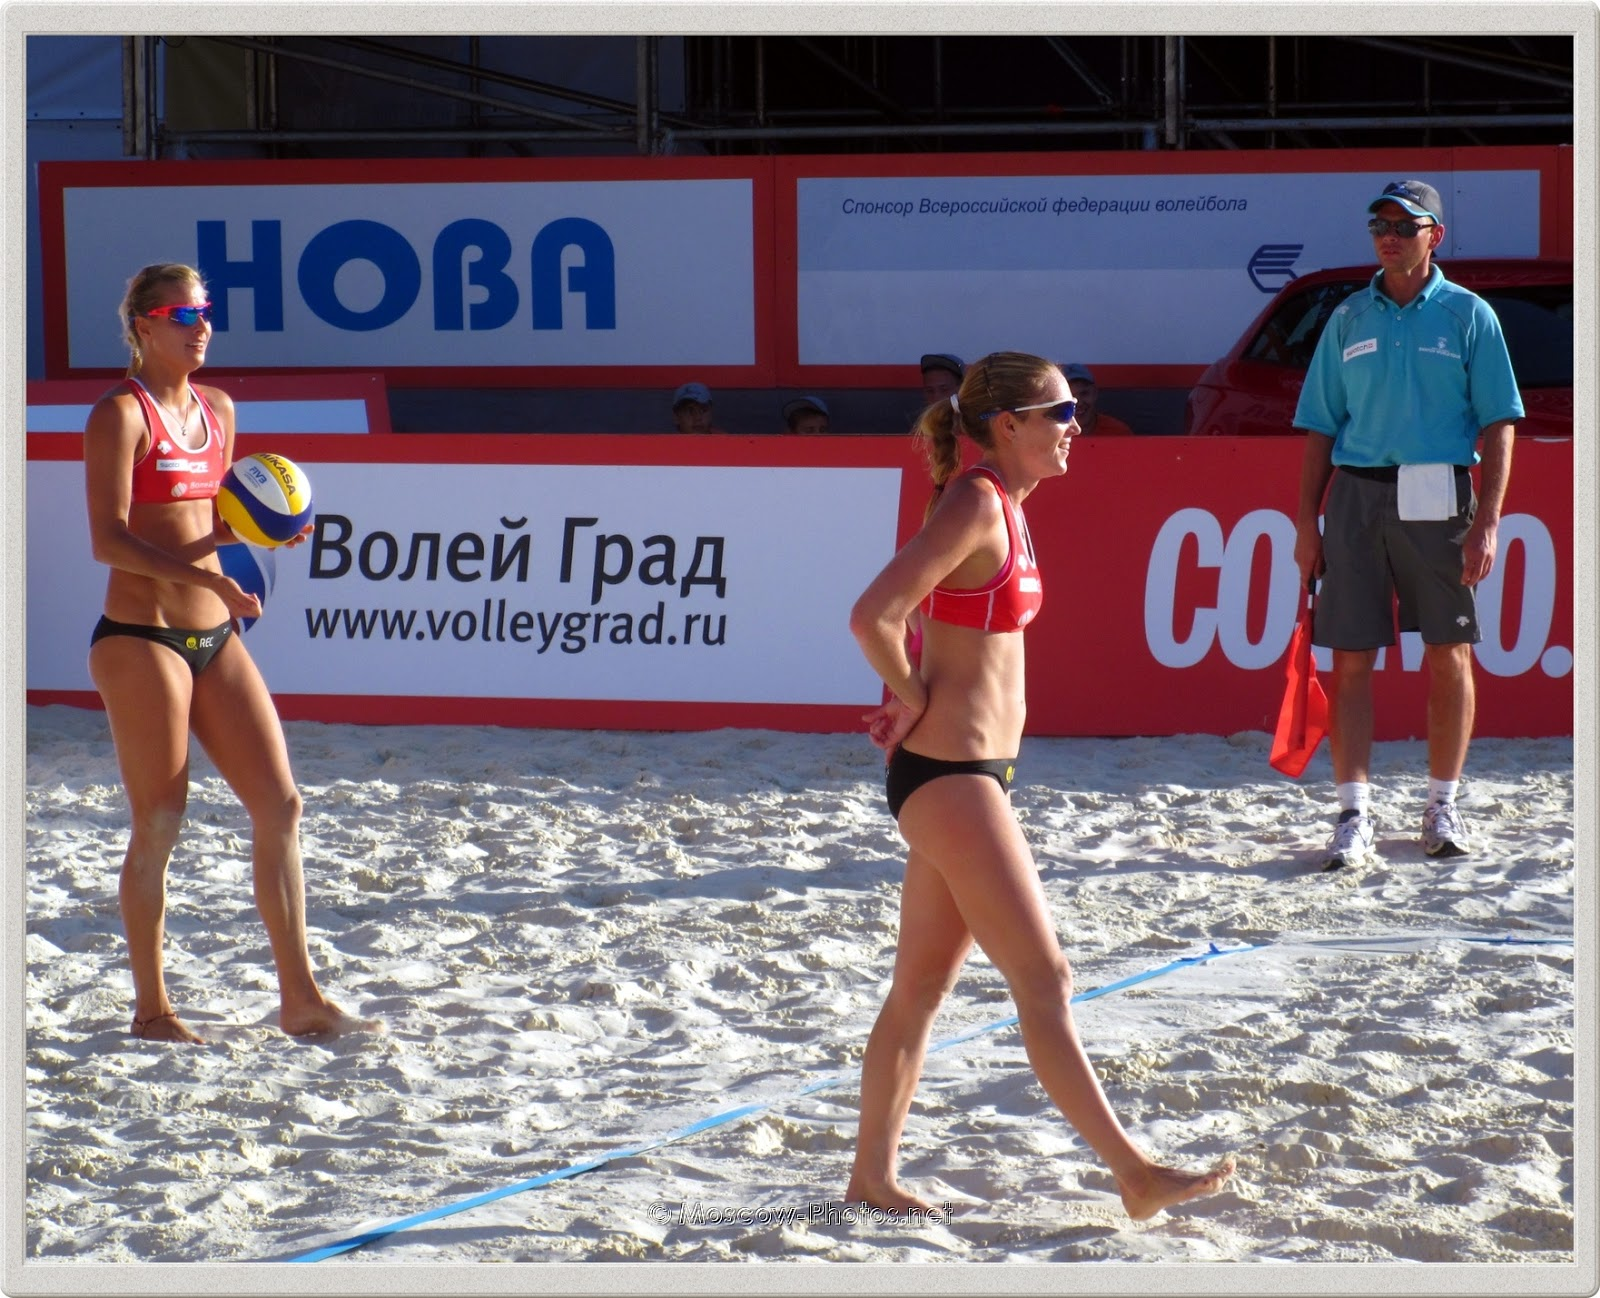 Serve of the Czech Beach Volleyball Team